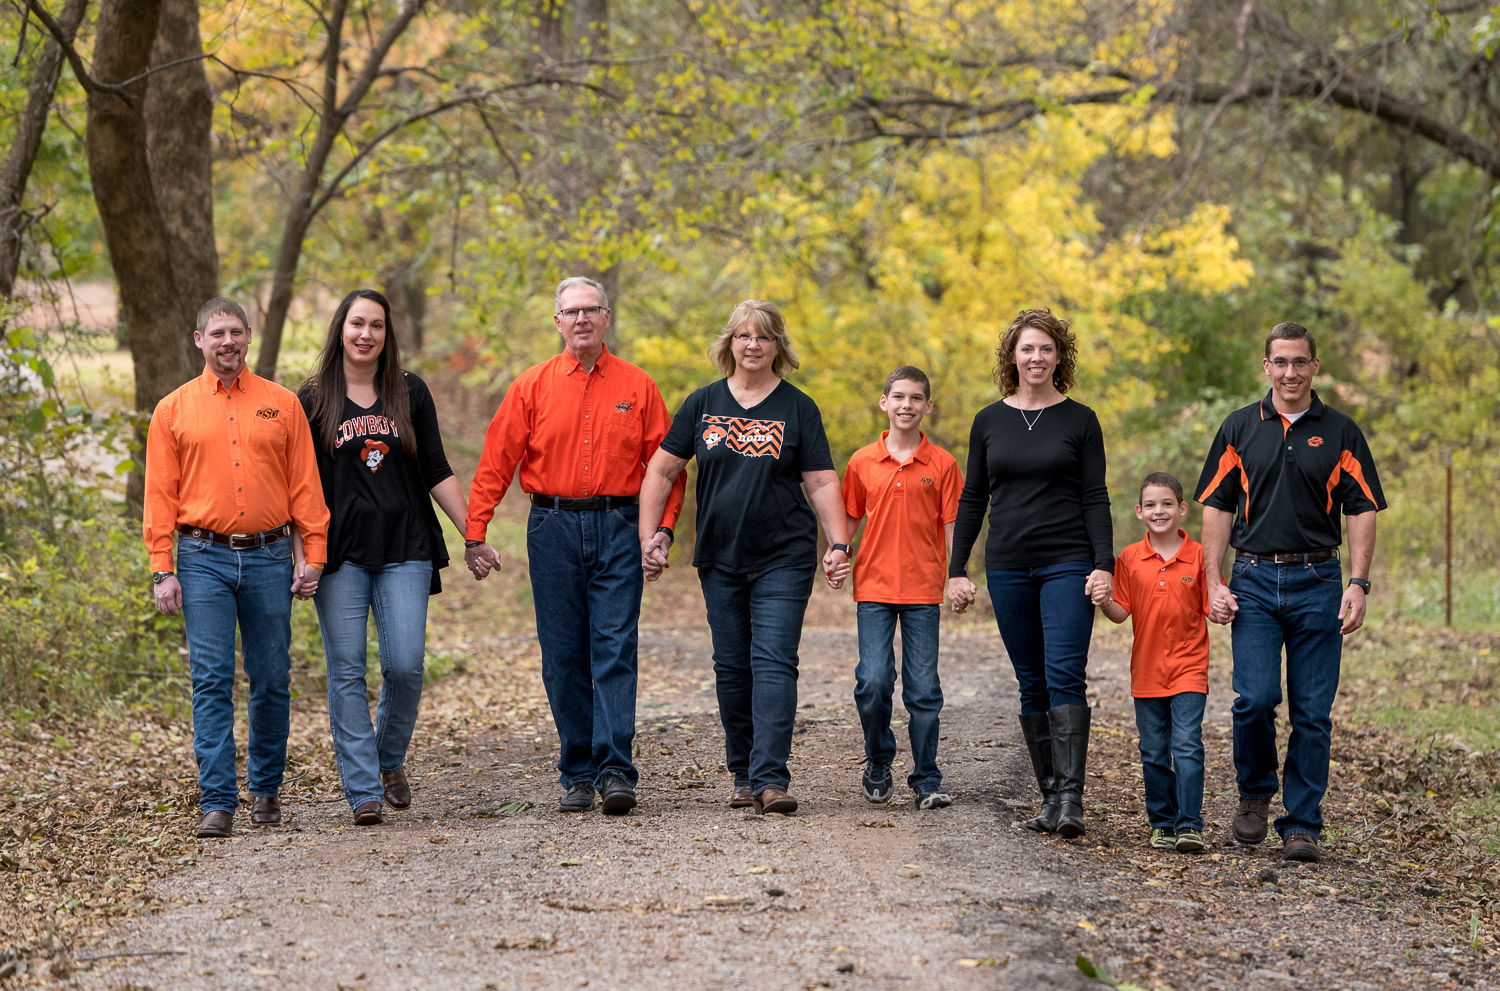 family walking on a pathway - 5 Crucial Mistakes You Need to Avoid When Photographing Clients